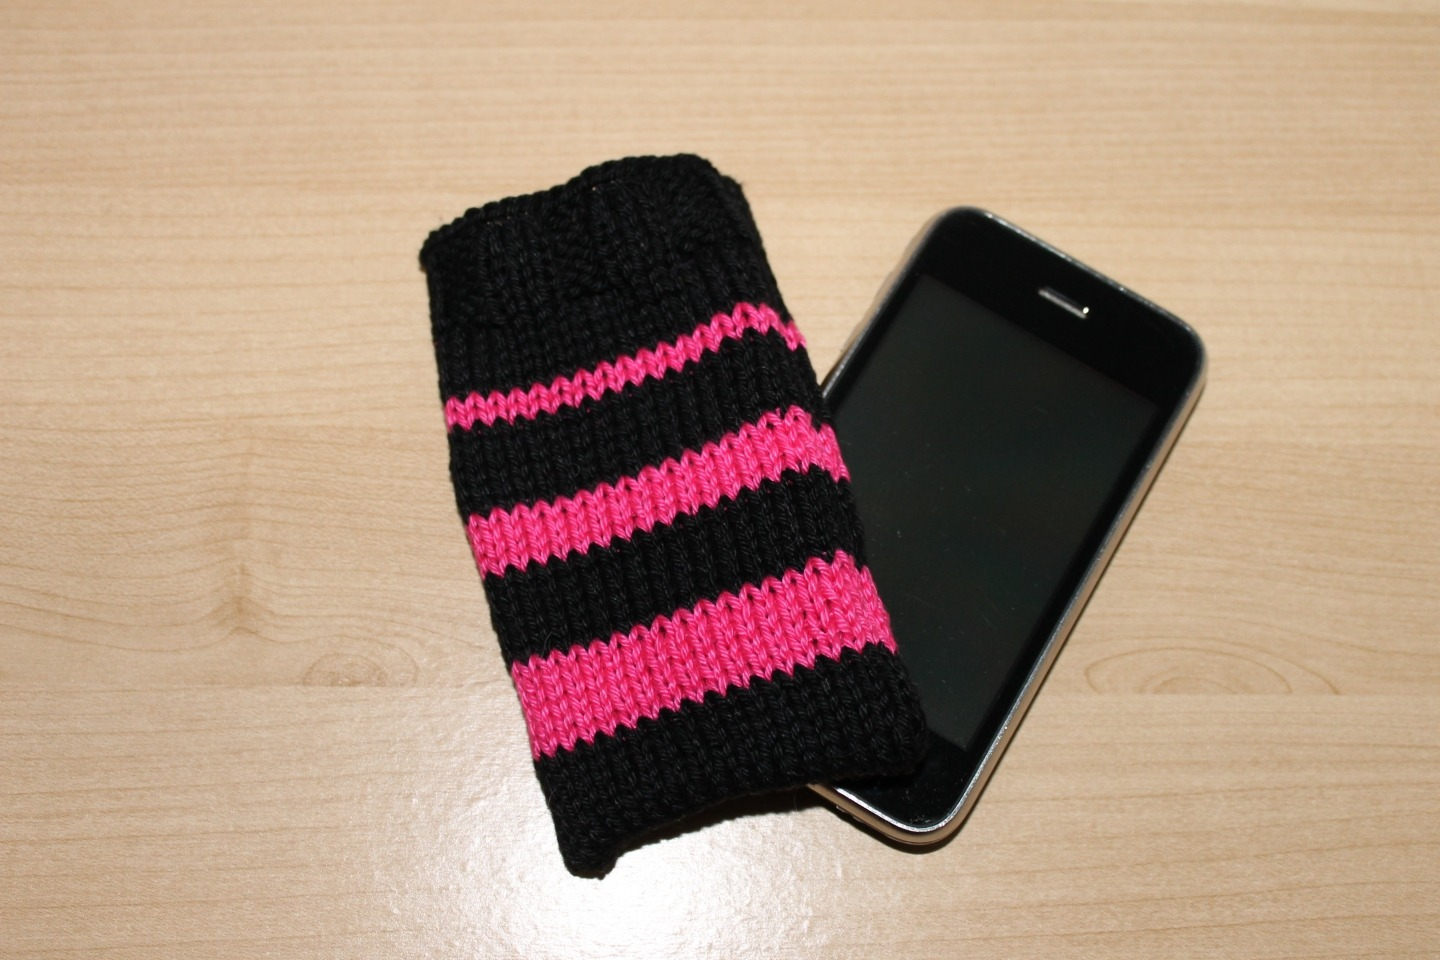 modele tricot chaussette telephone portable